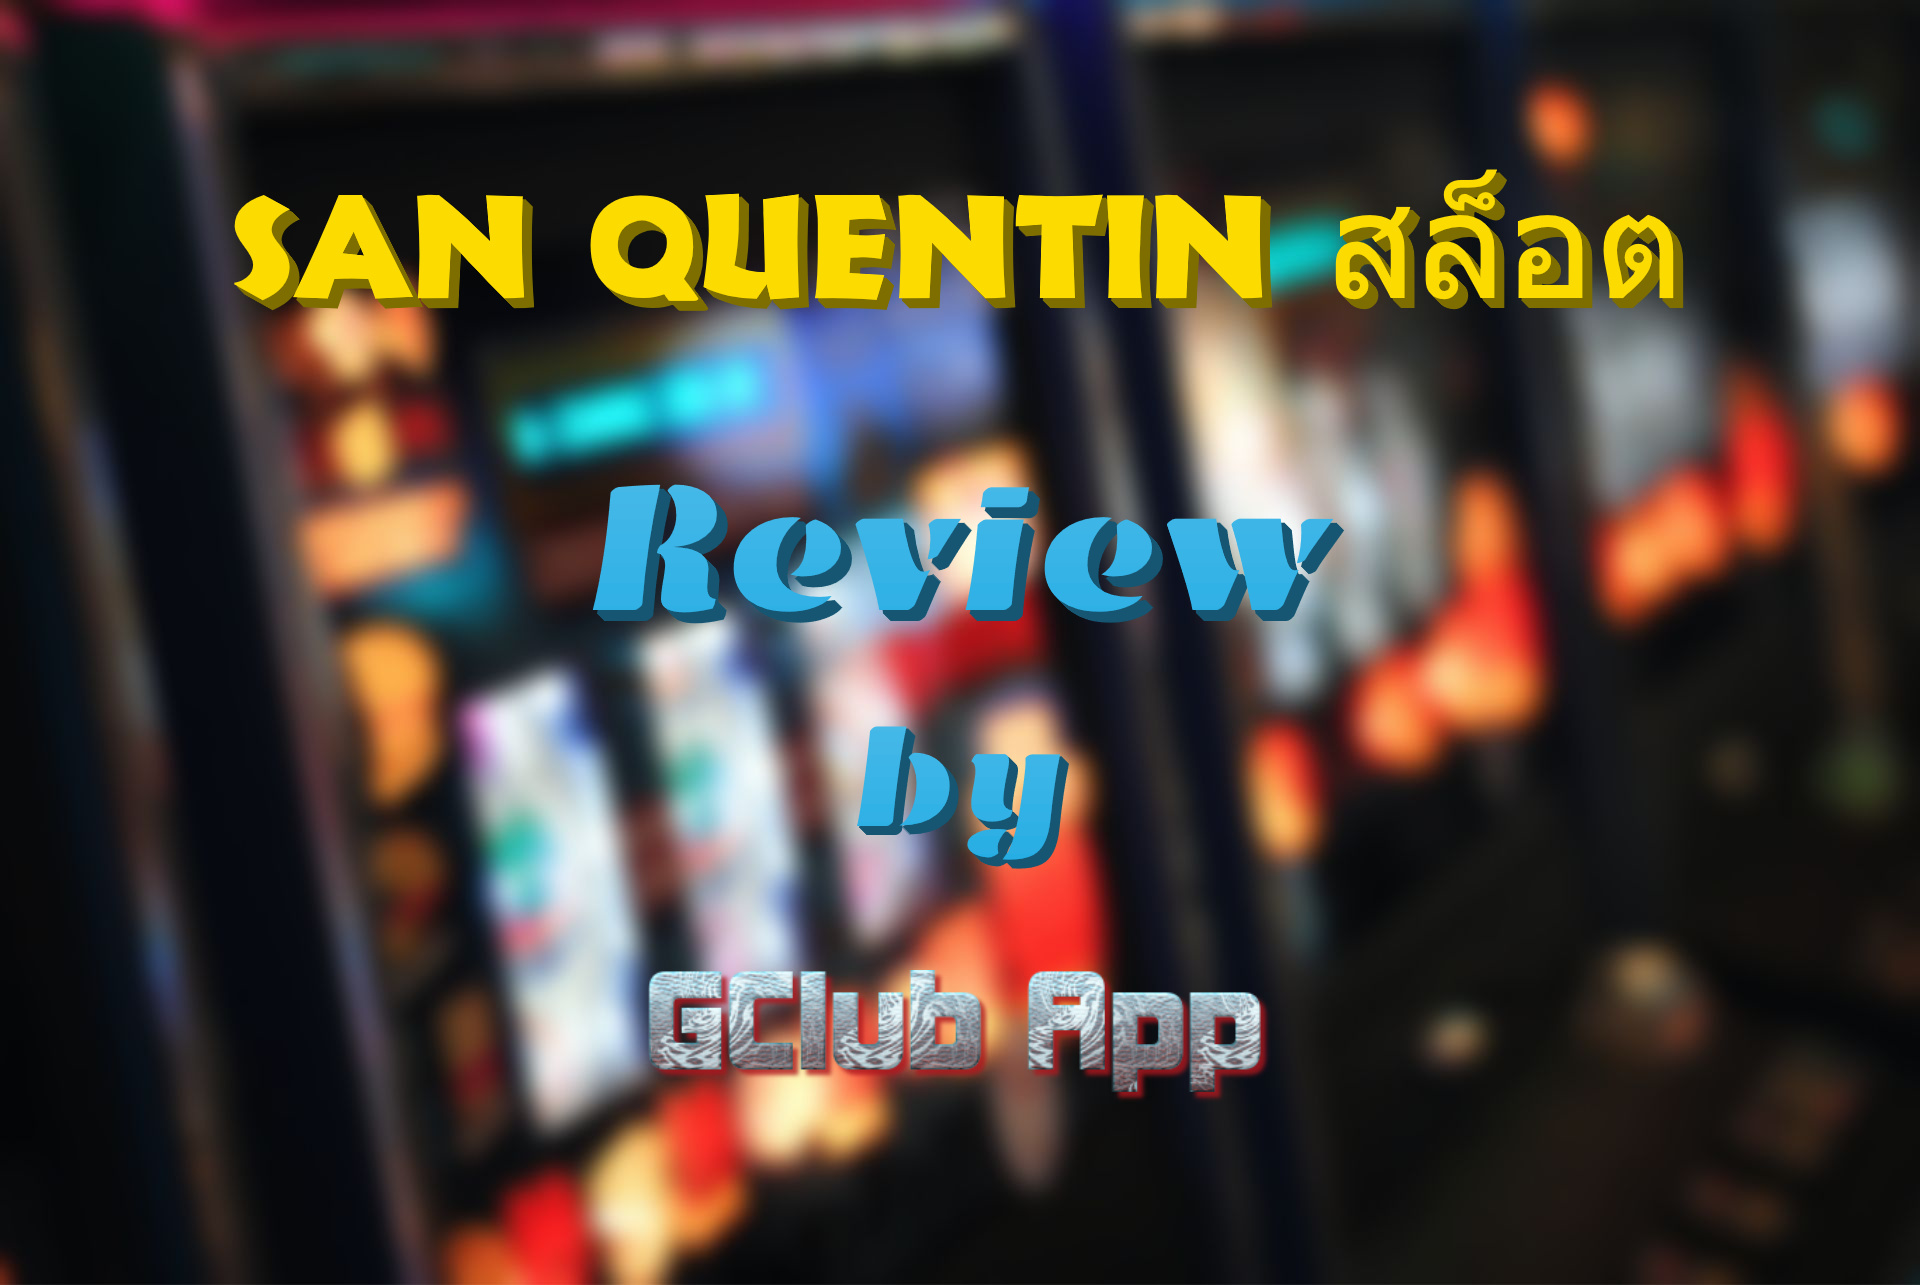 San Quentin Review